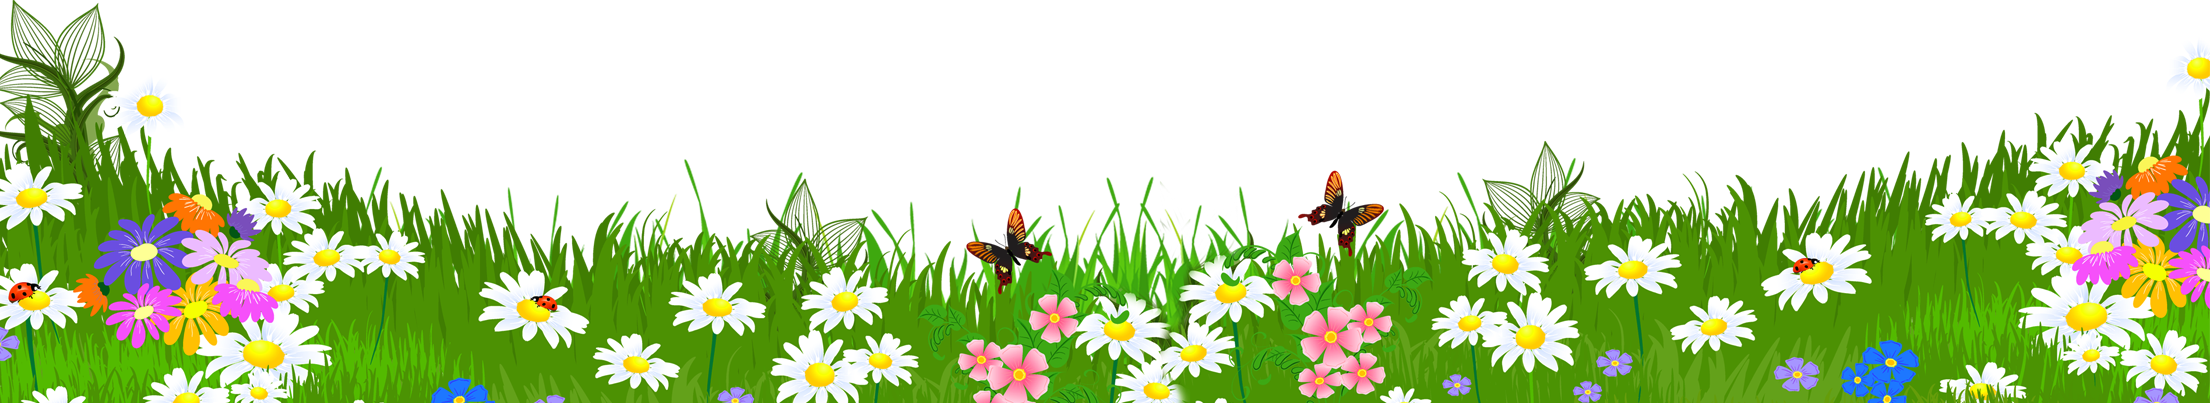 Clipart grass and flowers jpg free Grass and Flowers Clip Art – Clipart Free Download jpg free